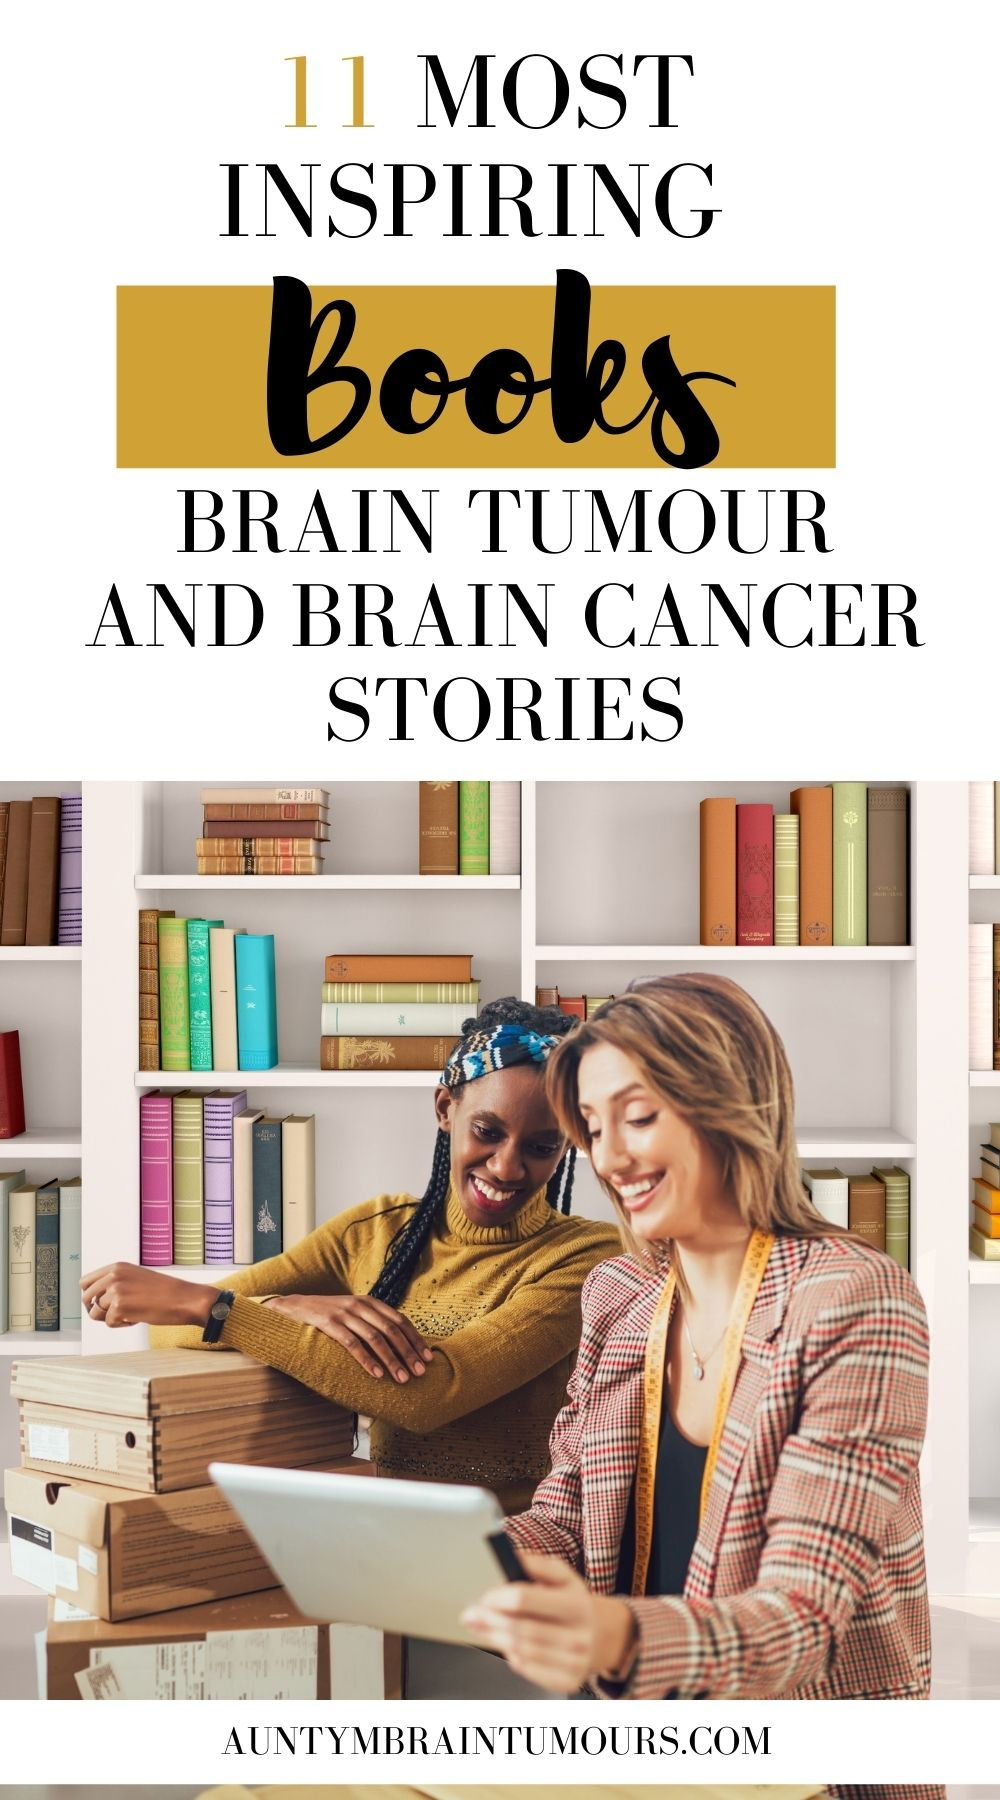 11 Most Inspiring Brain Tumour and Brain Cancer Stories